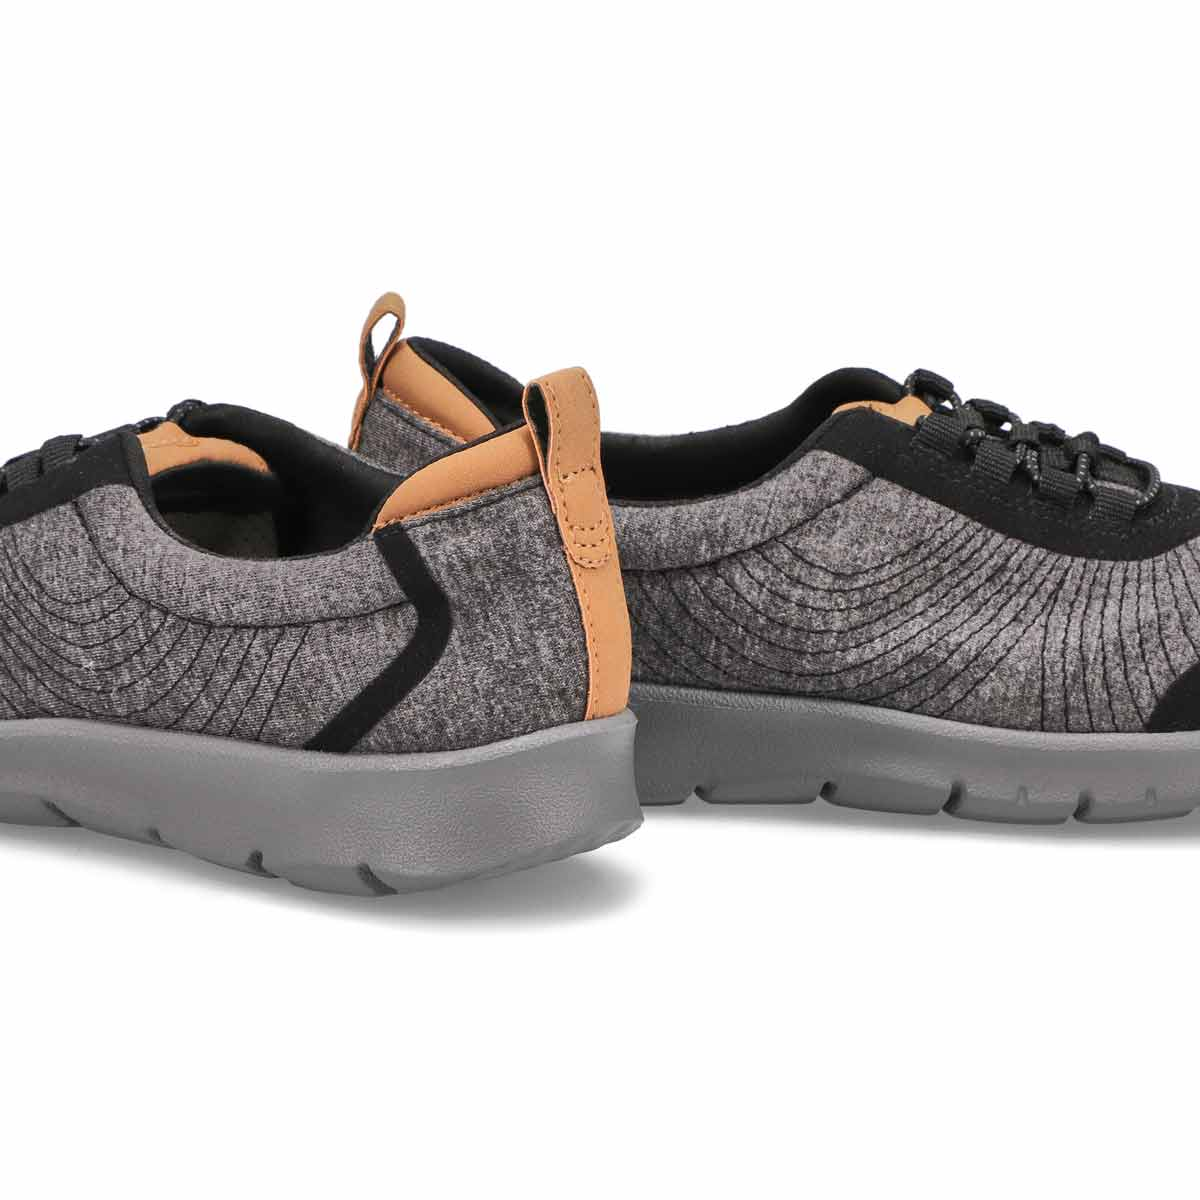 Lds Step Allena Bay blk casual shoe